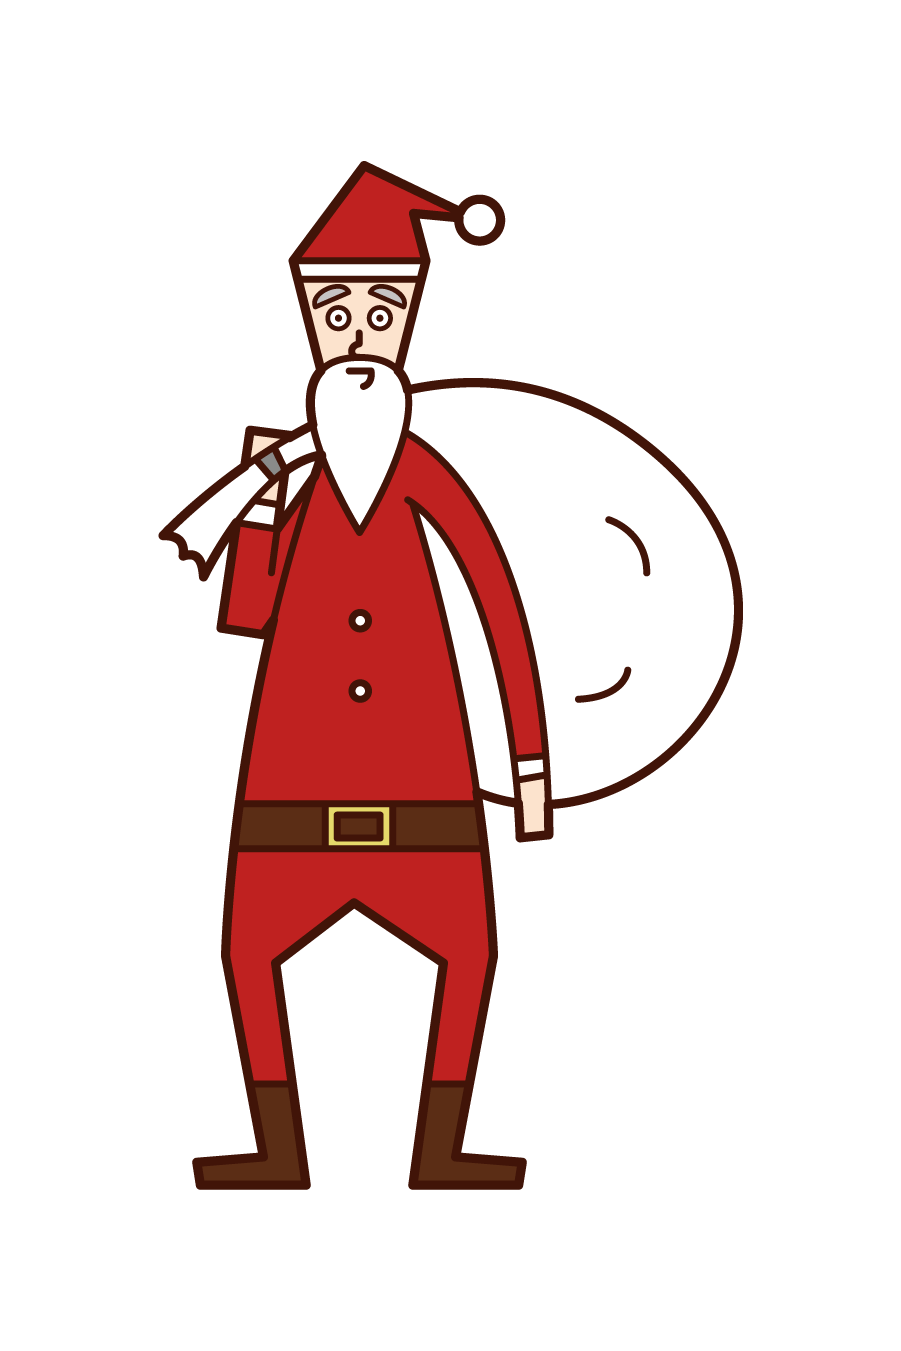 Illustration of Santa Claus with a big bag